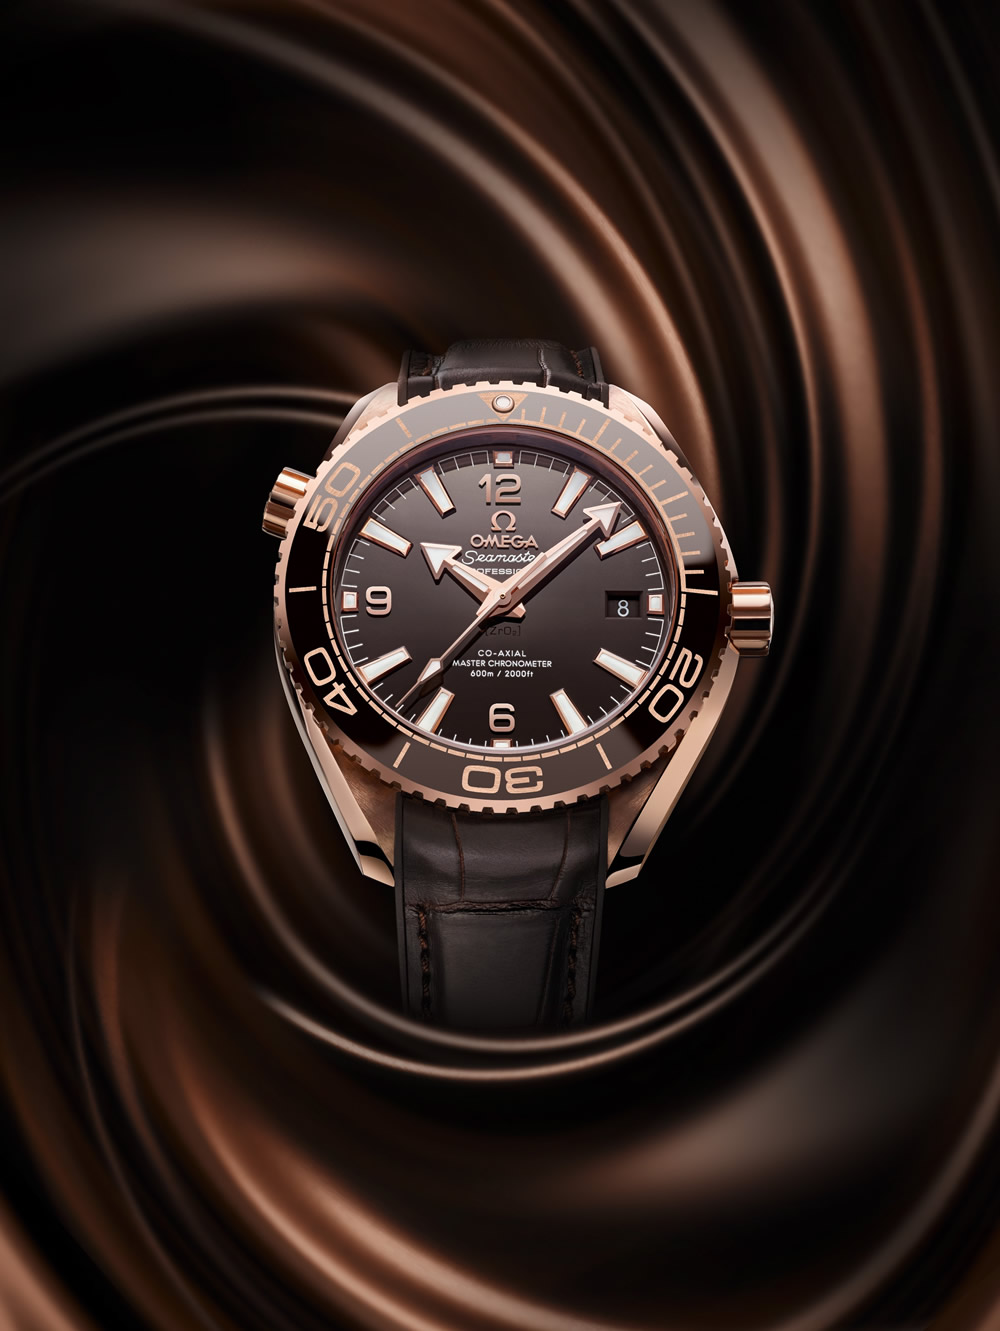 215.63.40.20.13.001_Seamaster Planet Ocean 39.5mm_with background